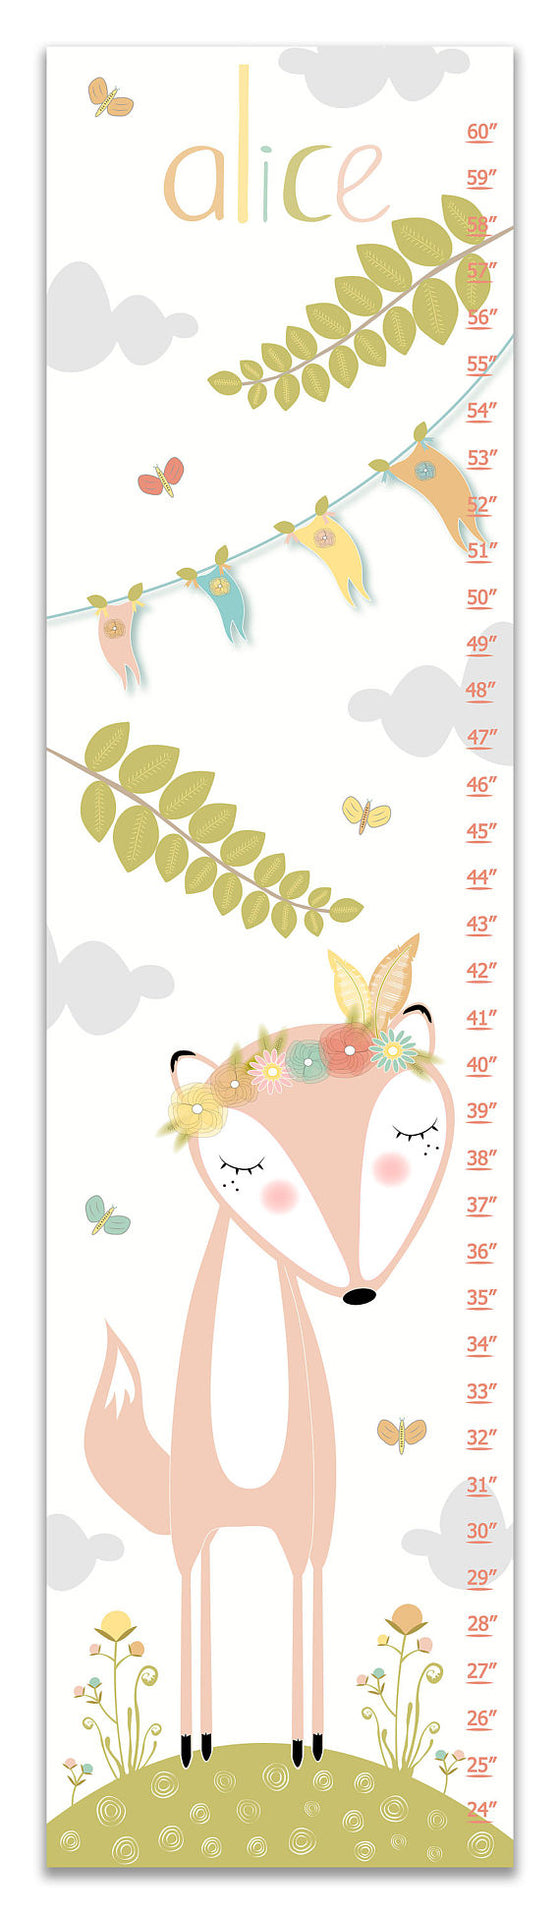 Fox Personalized Growth Chart - Nursery Decor - Baby Girl Gifts